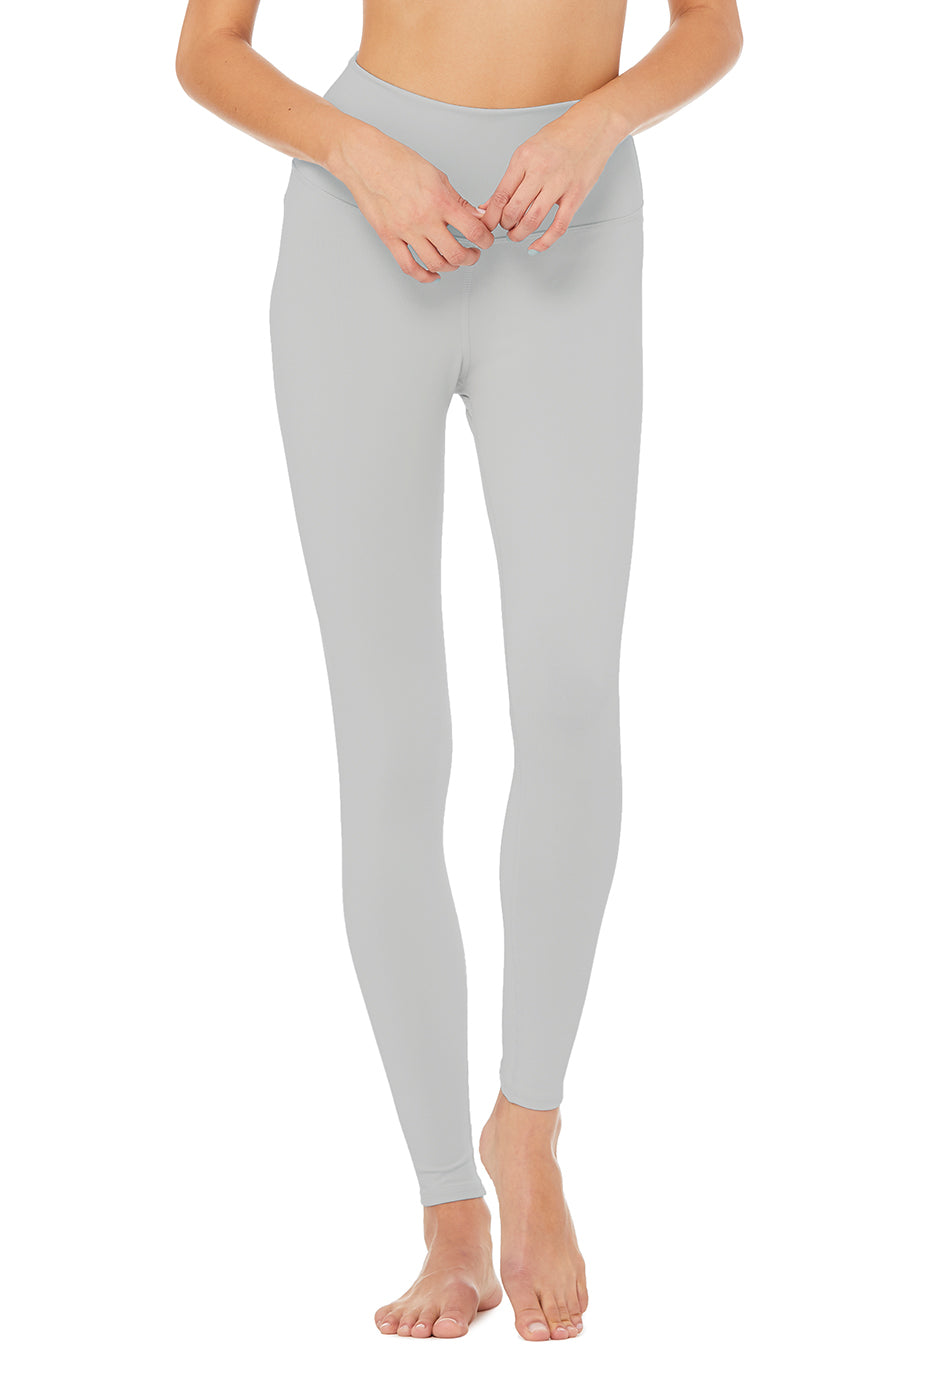 Alo Yoga Womens High Waist Dash Legging